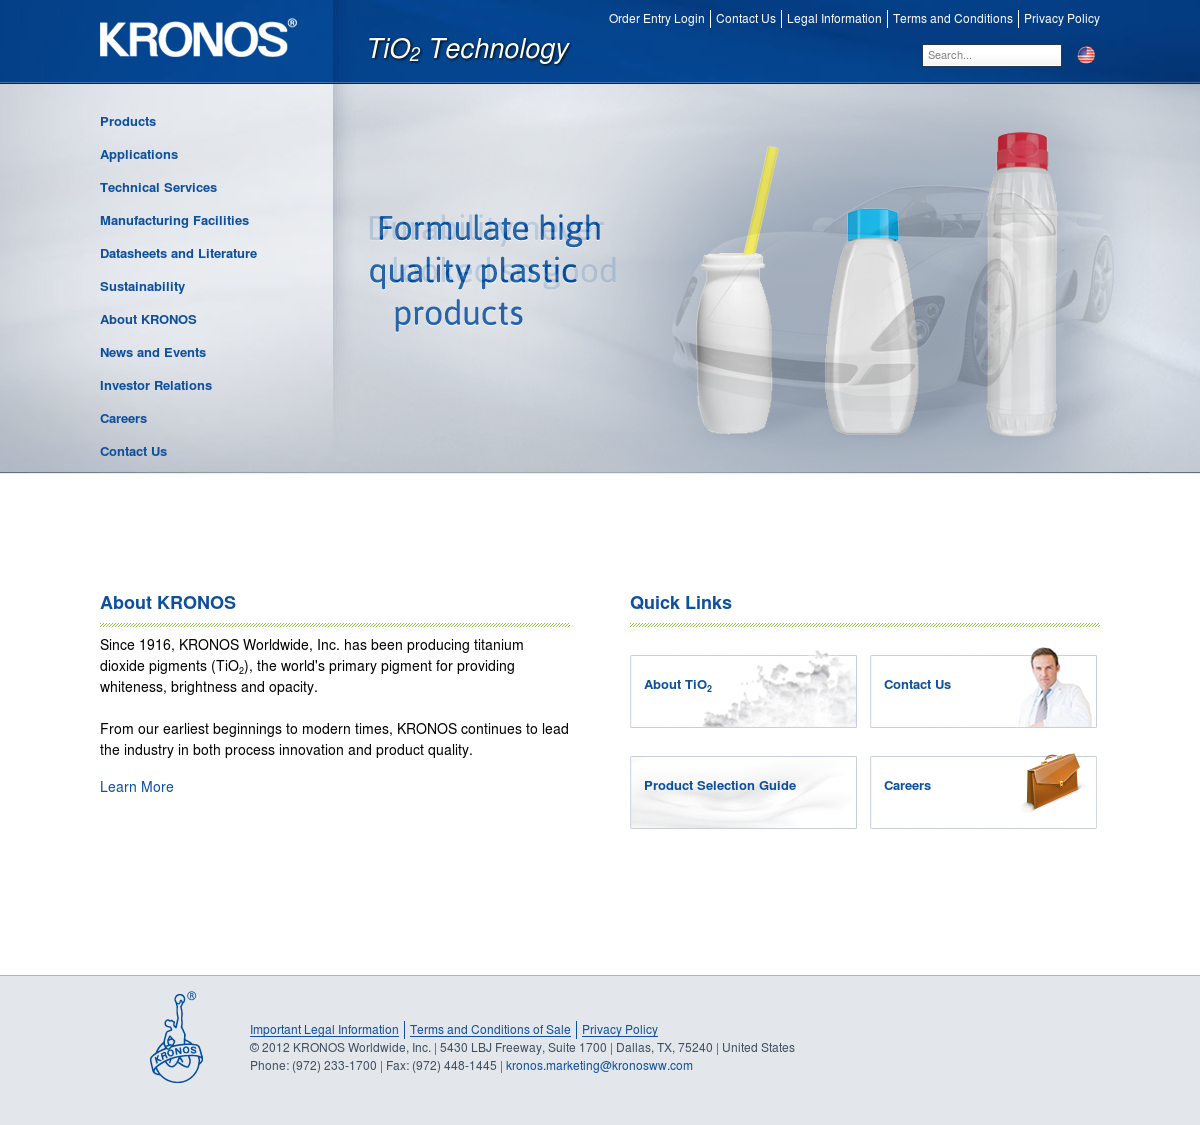 Kronos Worldwide Competitors, Revenue and Employees - Owler